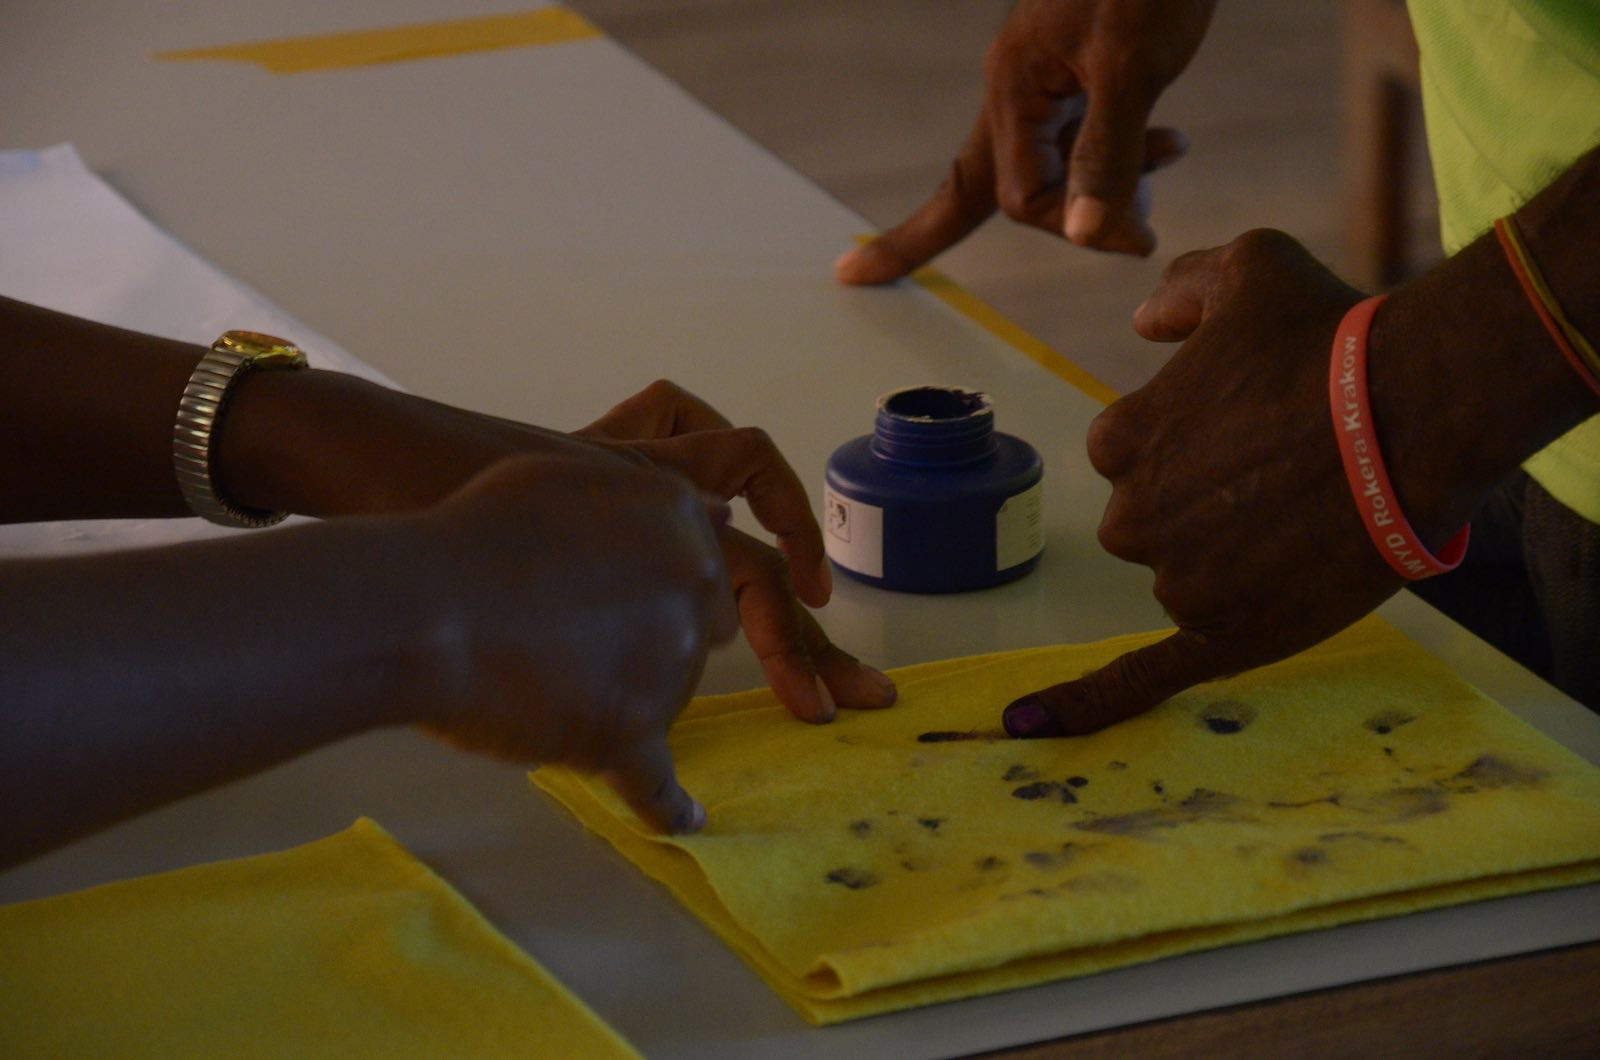 Voters dip into ink for the Solomon Islands elections (Photo: Commonwealth Secretariat/Flickr)